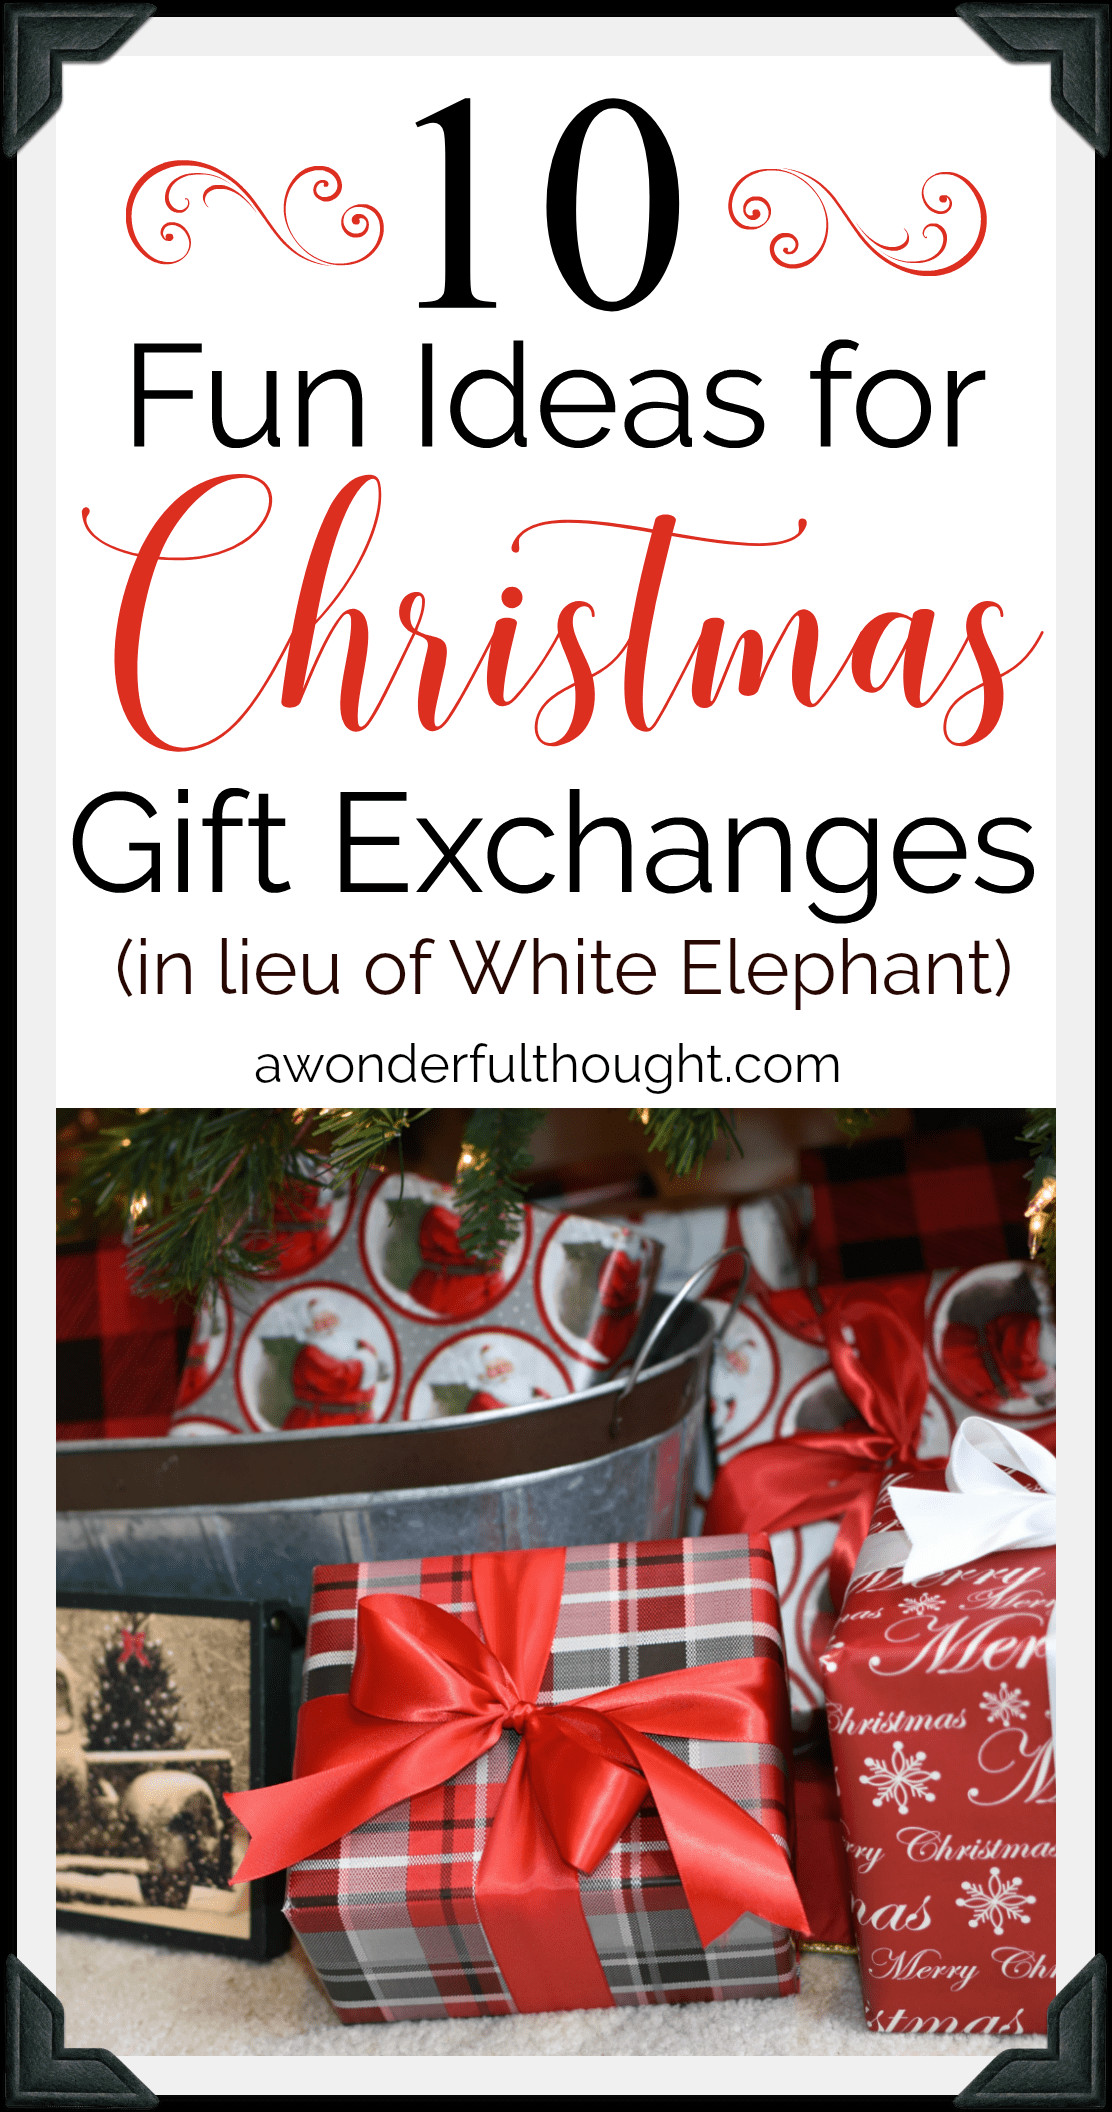 Funny Holiday Gift Exchange Ideas  Christmas Gift Exchange Ideas A Wonderful Thought